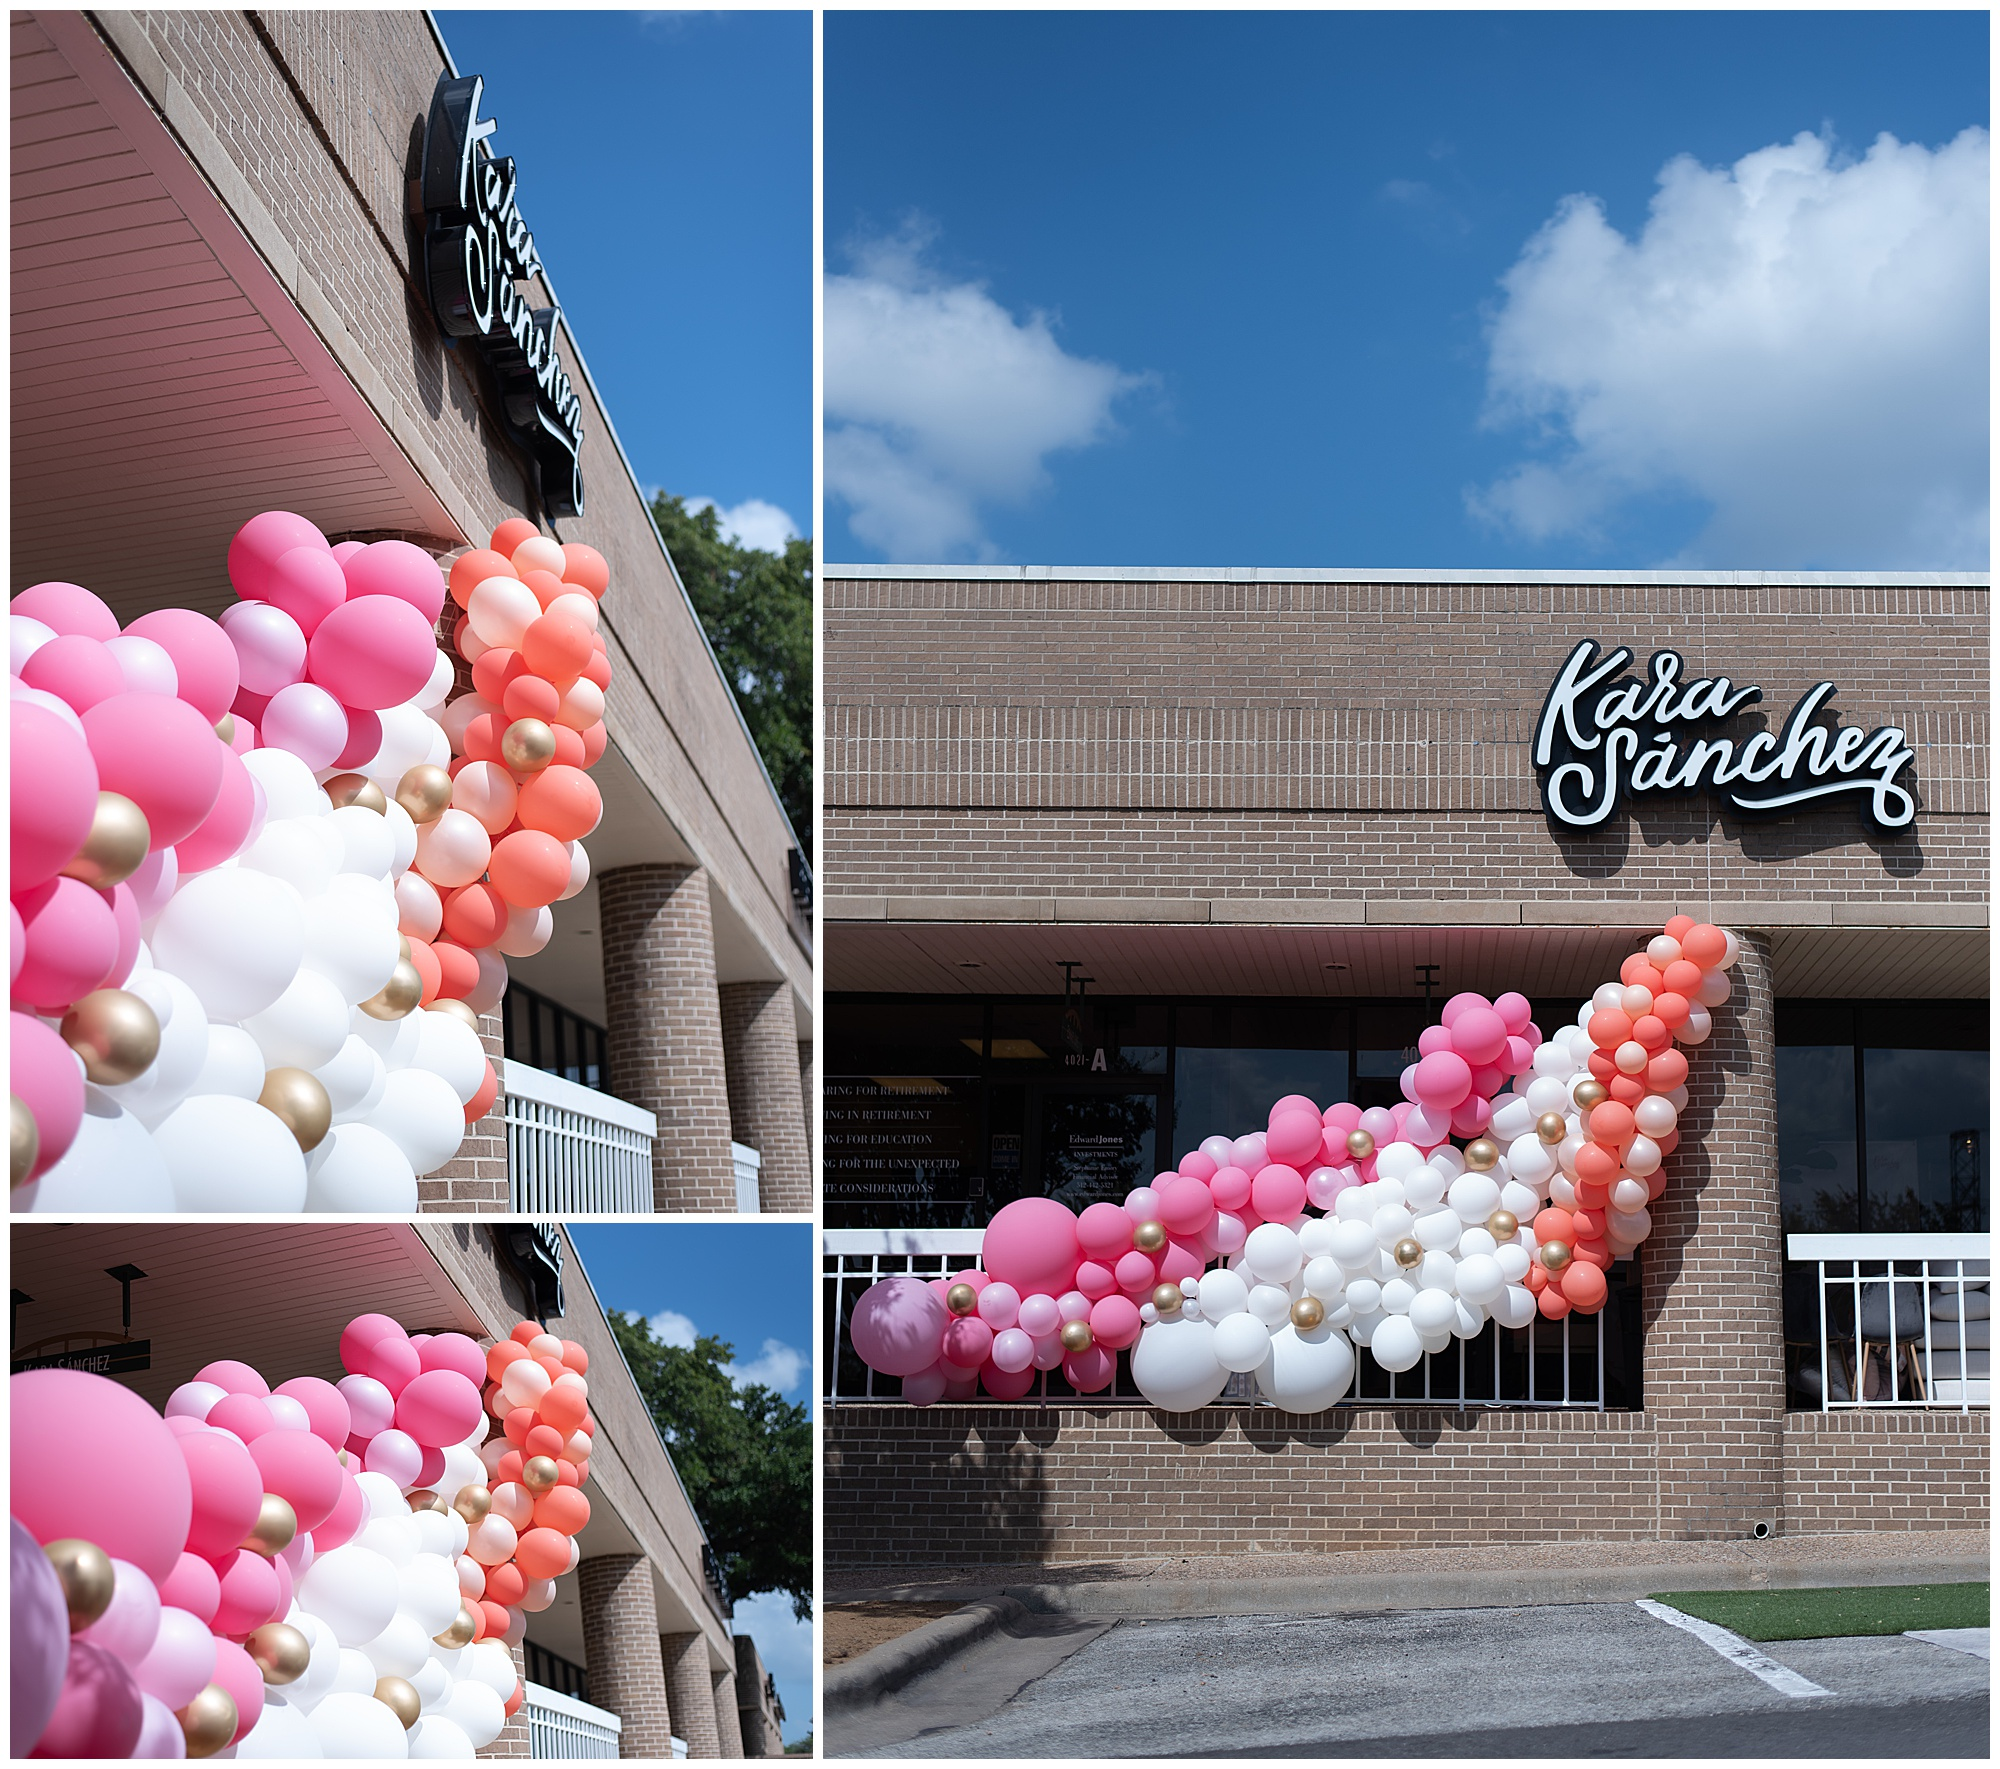 We created a balloon installation inside and outside the boutique for Kara Sanchez's grand opening.